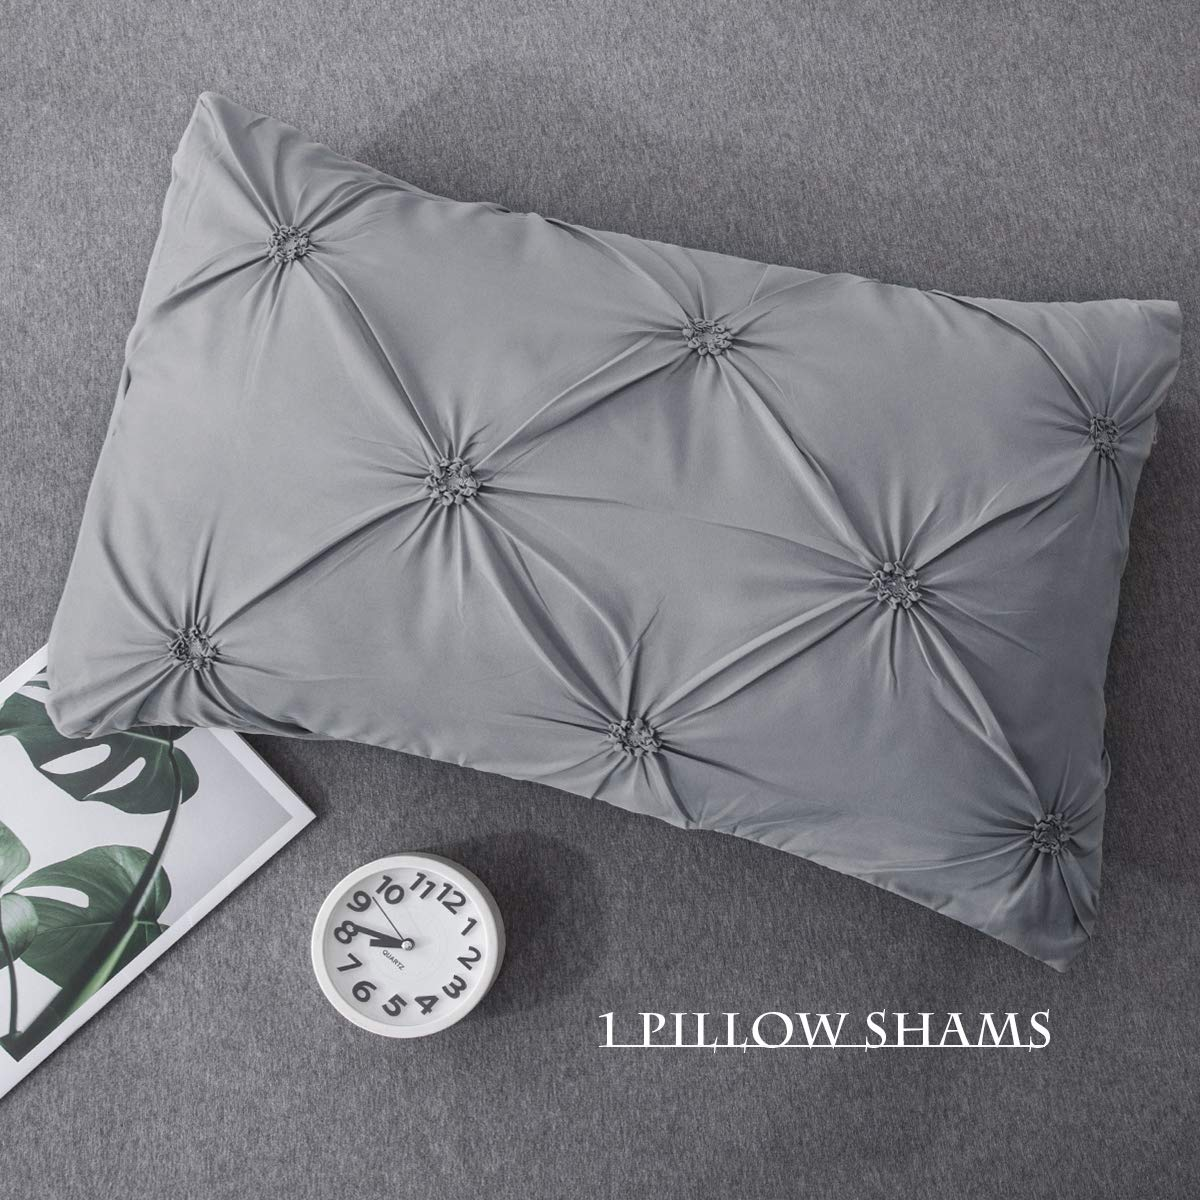 66 x 90inch Eternal Moment Pinch Pleat Duvet Cover with Zipper Closure Soft Luxurious Microfiber Pintuck Decorative Bedding Set with Pillow Shams 1 Duvet Cover and 1 Pillowcase White, Twin